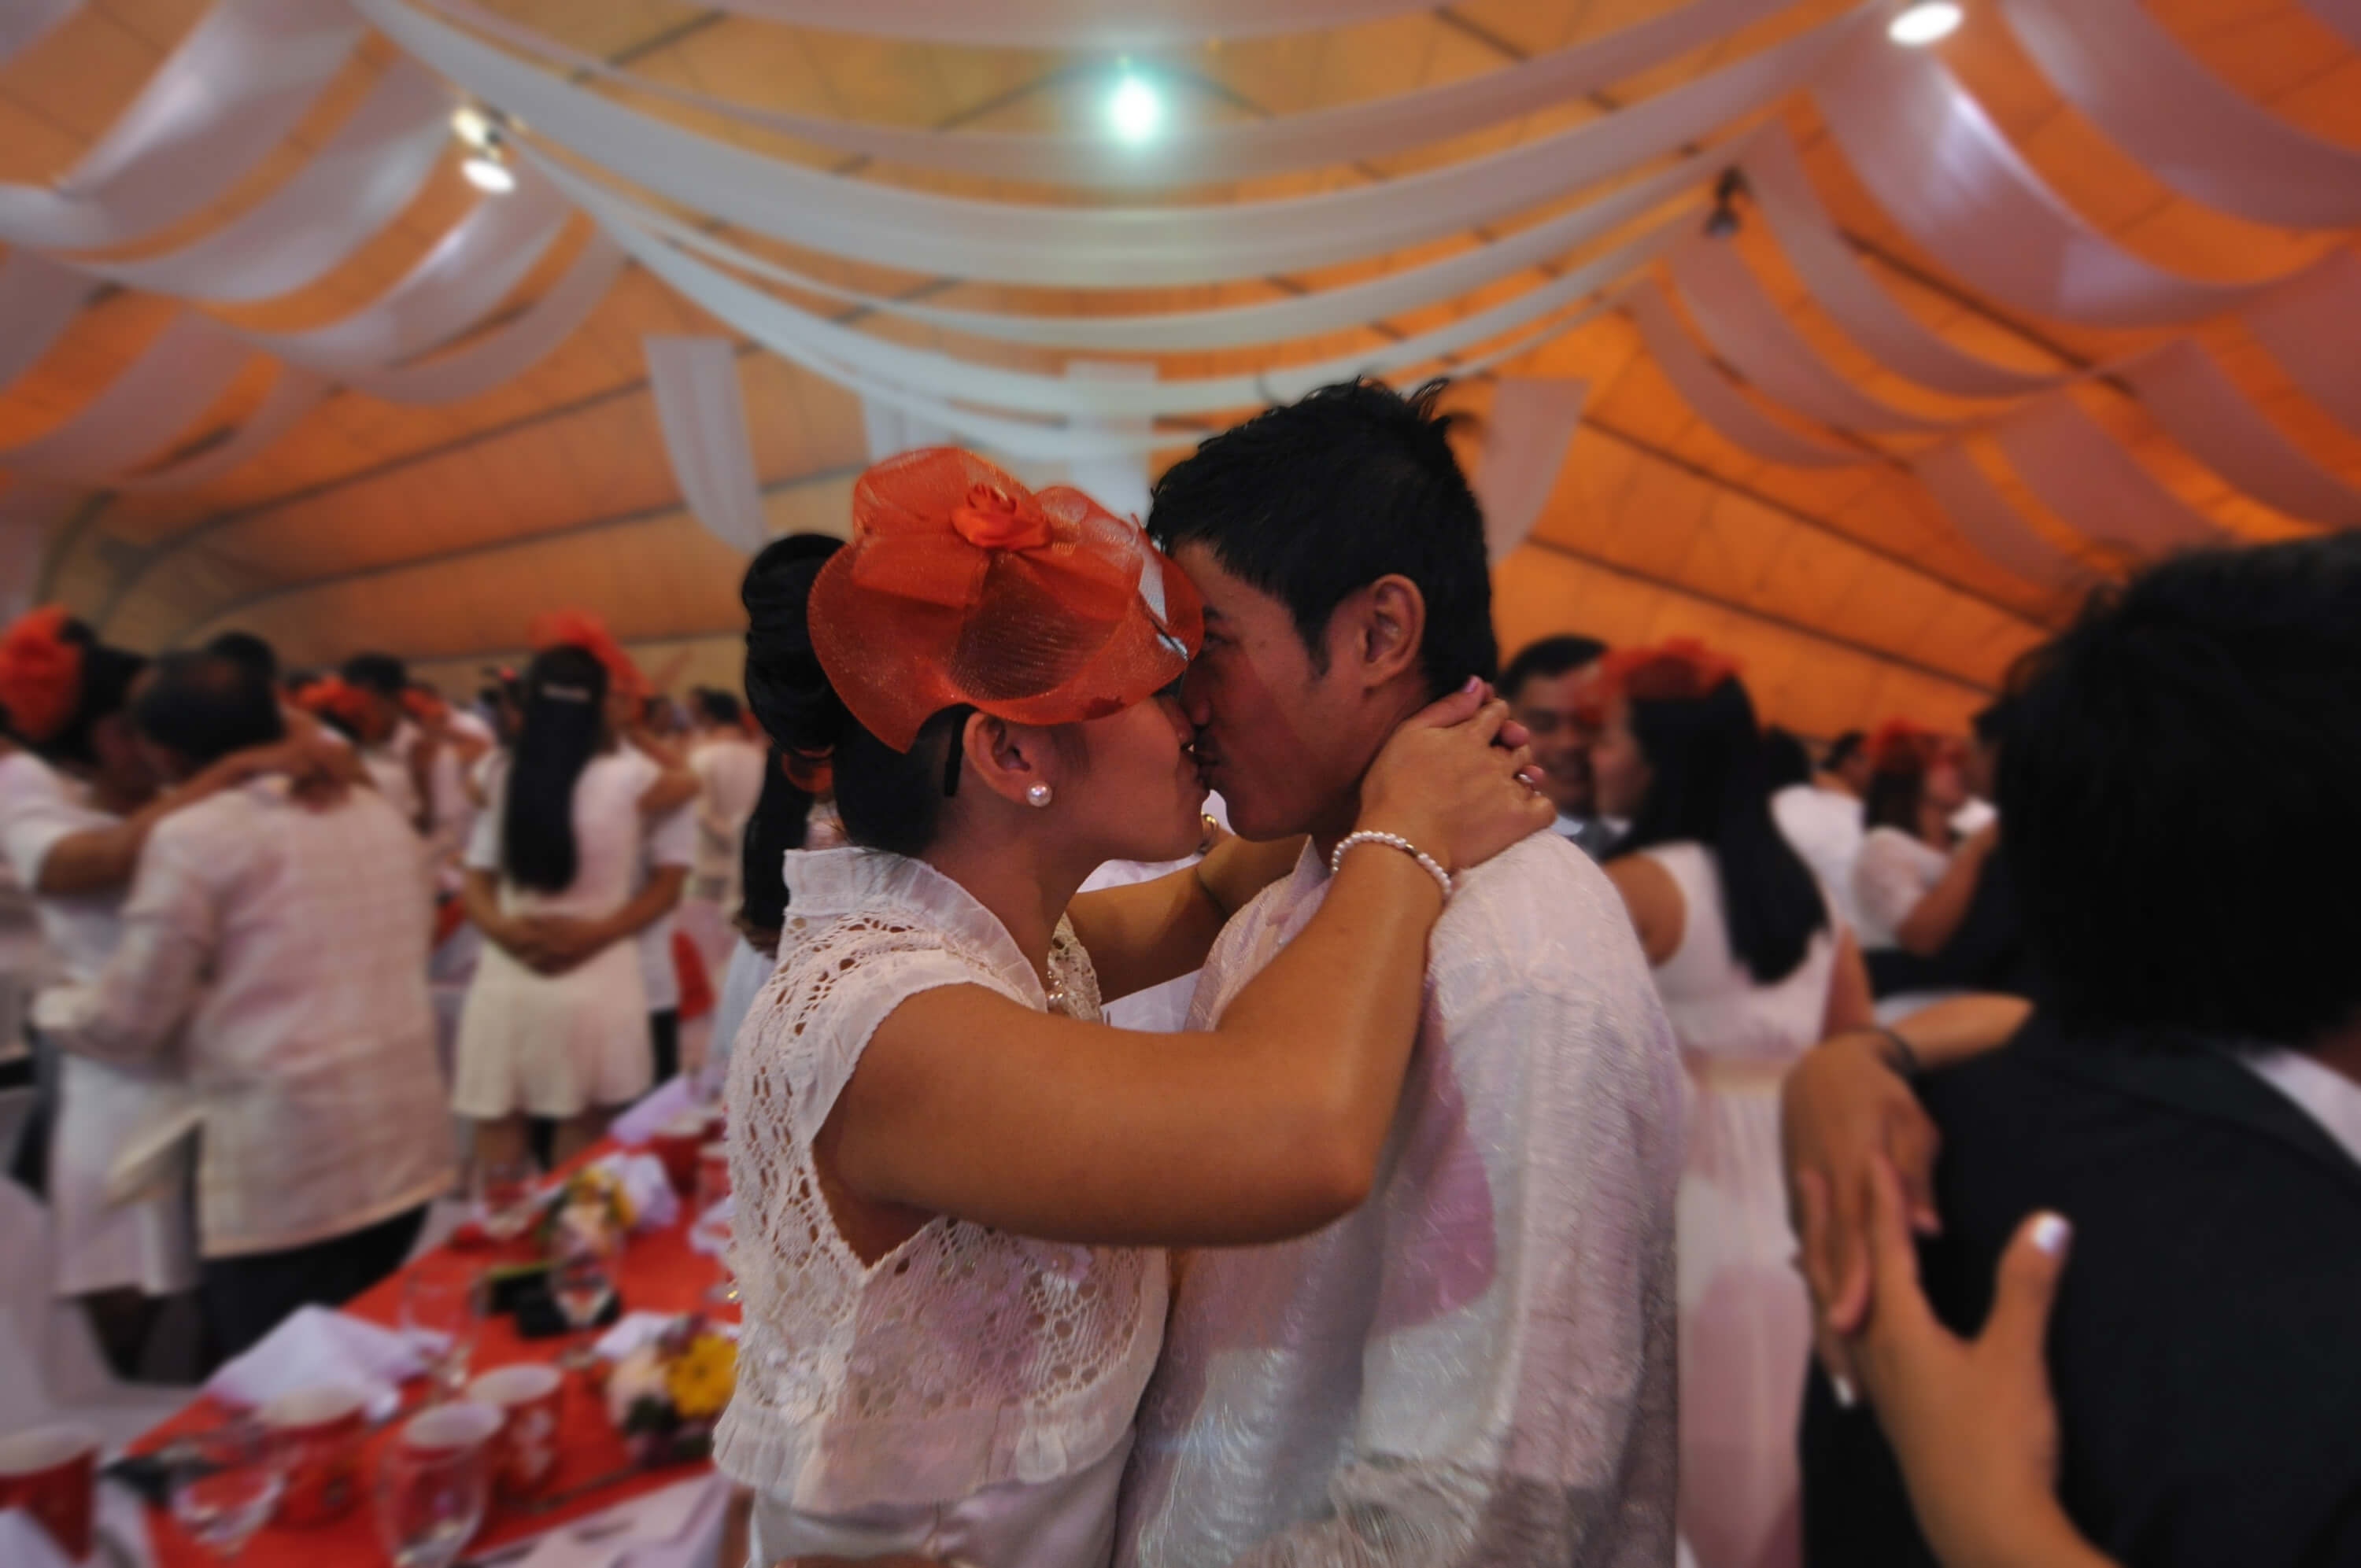 couples getting married in Philippines on valentines day